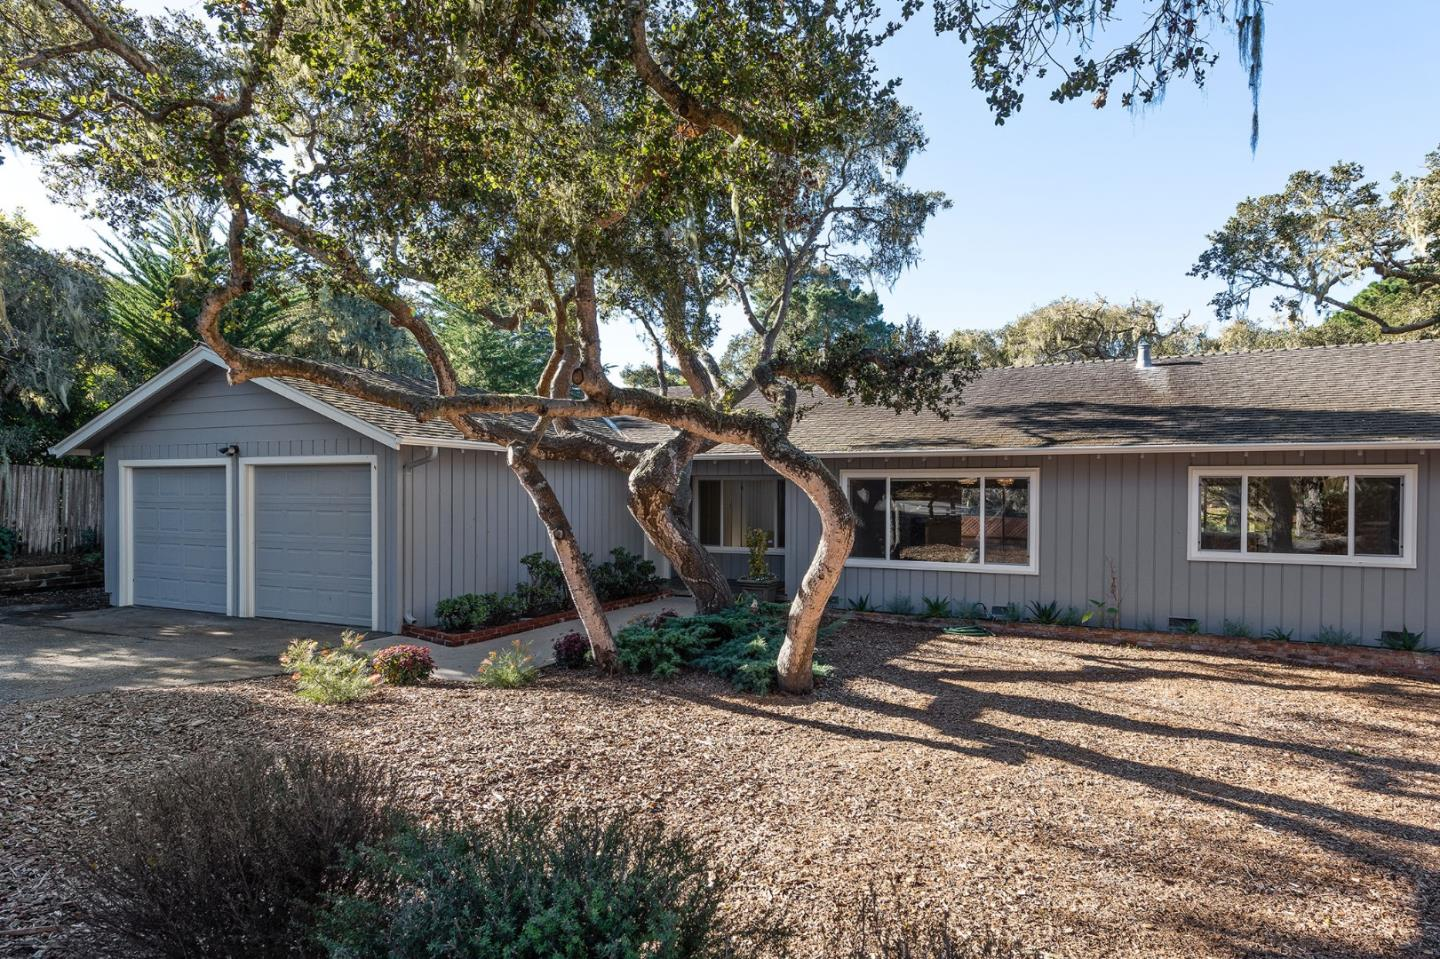 This single level home is the perfect weekend home or full-time residence in the Country Club area of Pebble Beach. Move-in ready for you to settle in and begin enjoying the coastal lifestyle where you can walk along the seaside and forest pathways. This home sits on a corner lot just blocks to Spanish Bay. It features four bedrooms with two full baths and one half-bath. The large open living room with fireplace and built-in bookshelf welcomes you home to a cozy space and is equally inviting for entertaining guests. There is a dining room off of the kitchen and a separate laundry room. The fourth bedroom is on this side of the house makes it perfect for a separate guest room or home office. Recently refreshed, the home has a comfortable floorplan today but you can envision the opportunity for more future improvements.